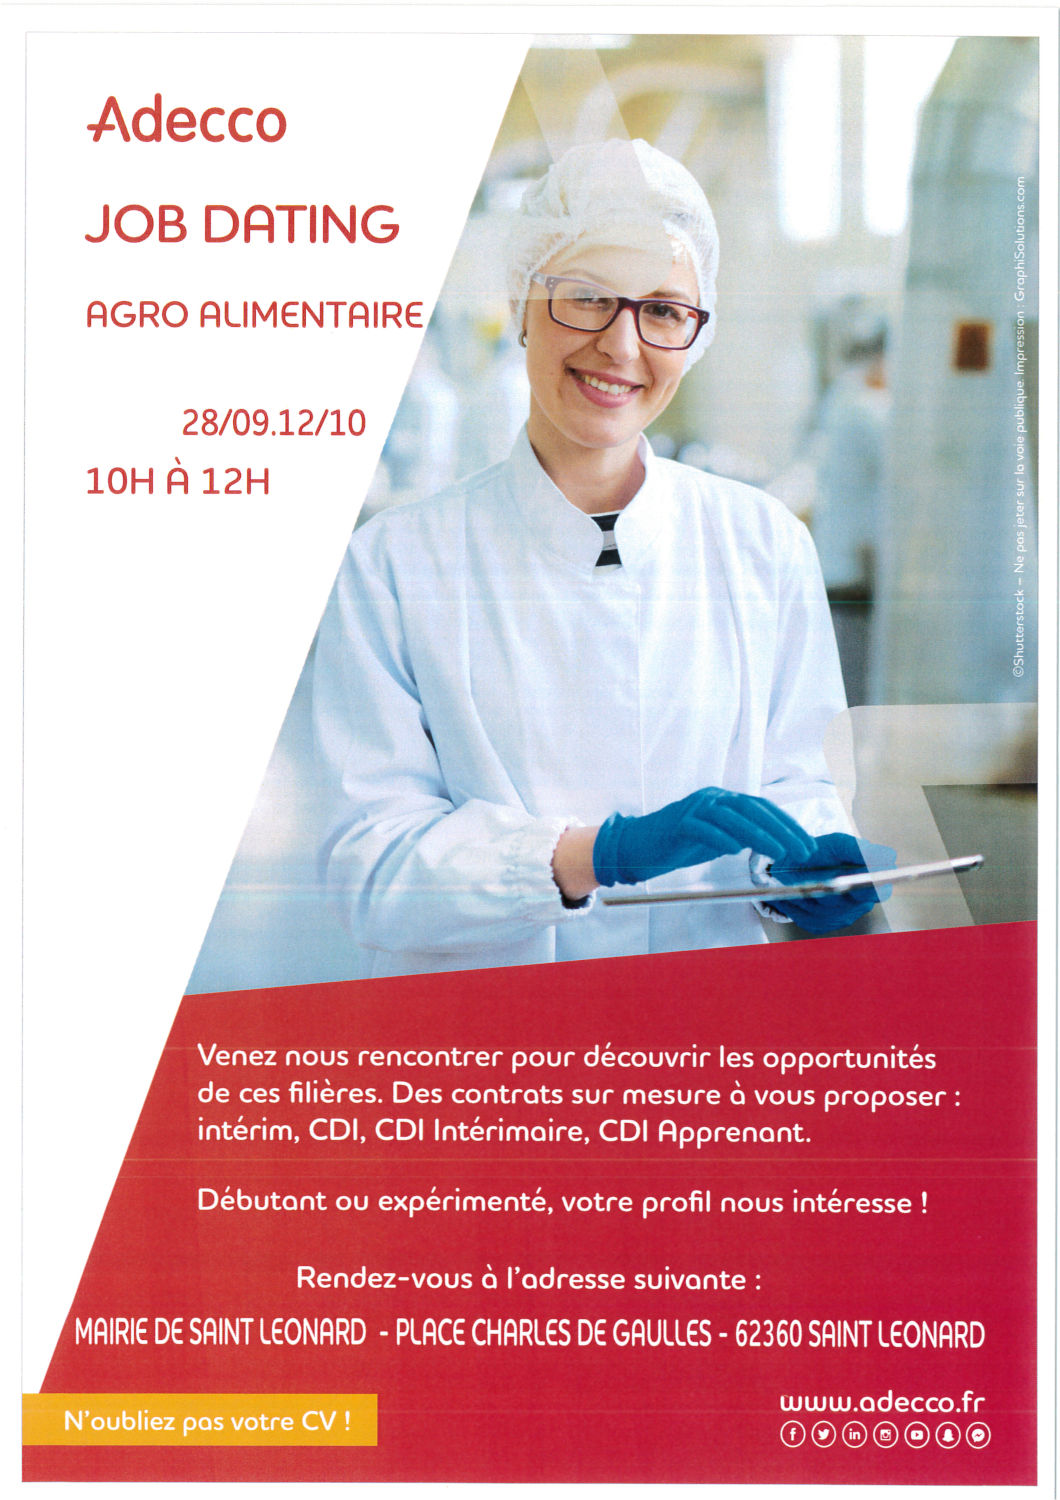 JOB DATING ADECCO AGRO ALIMENTAIRE